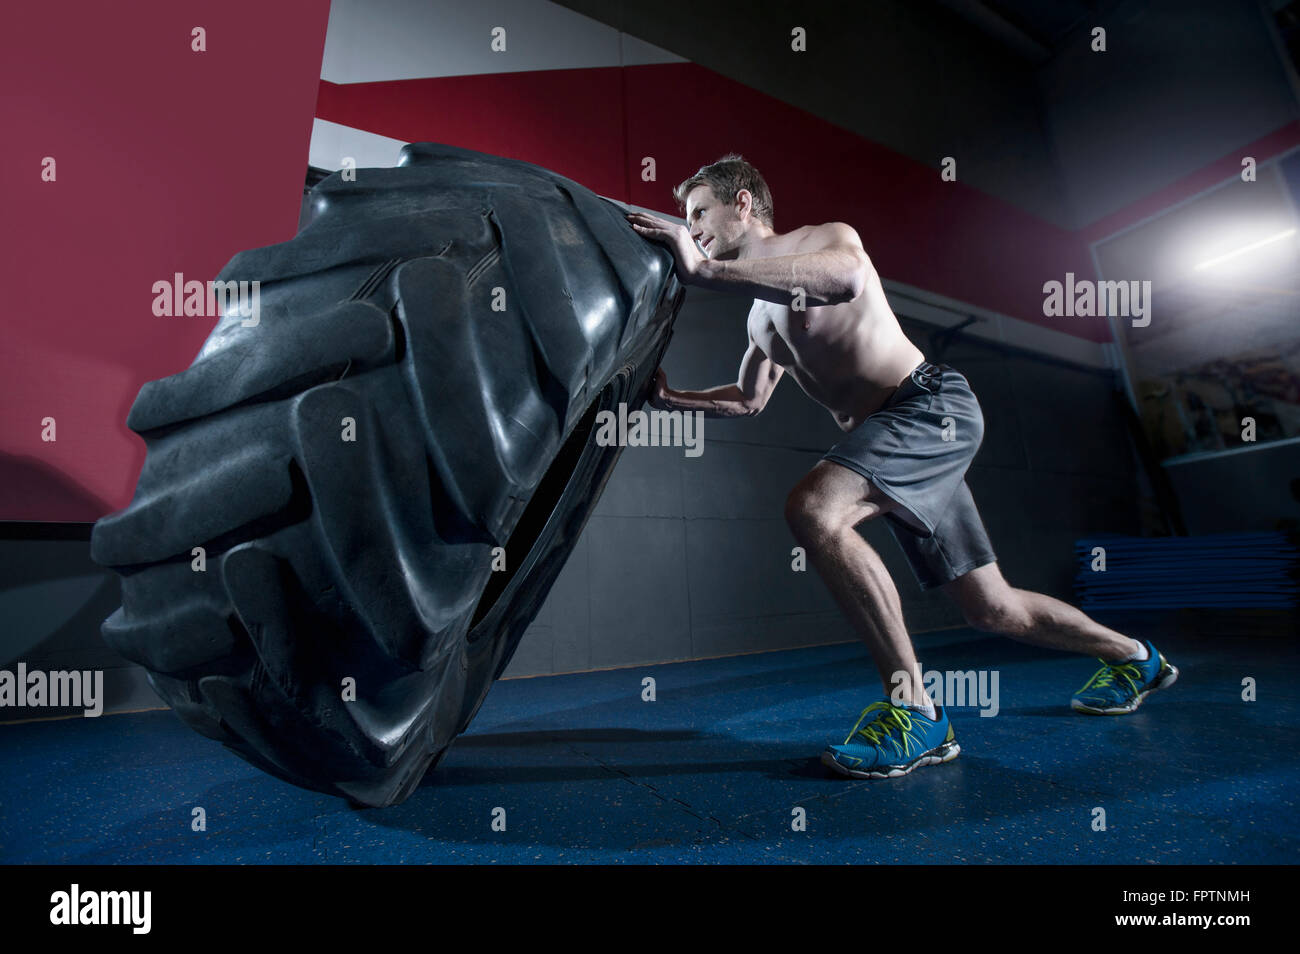 Man training with the tractor wheel in the gym, Bavaria, Germany - Stock Image